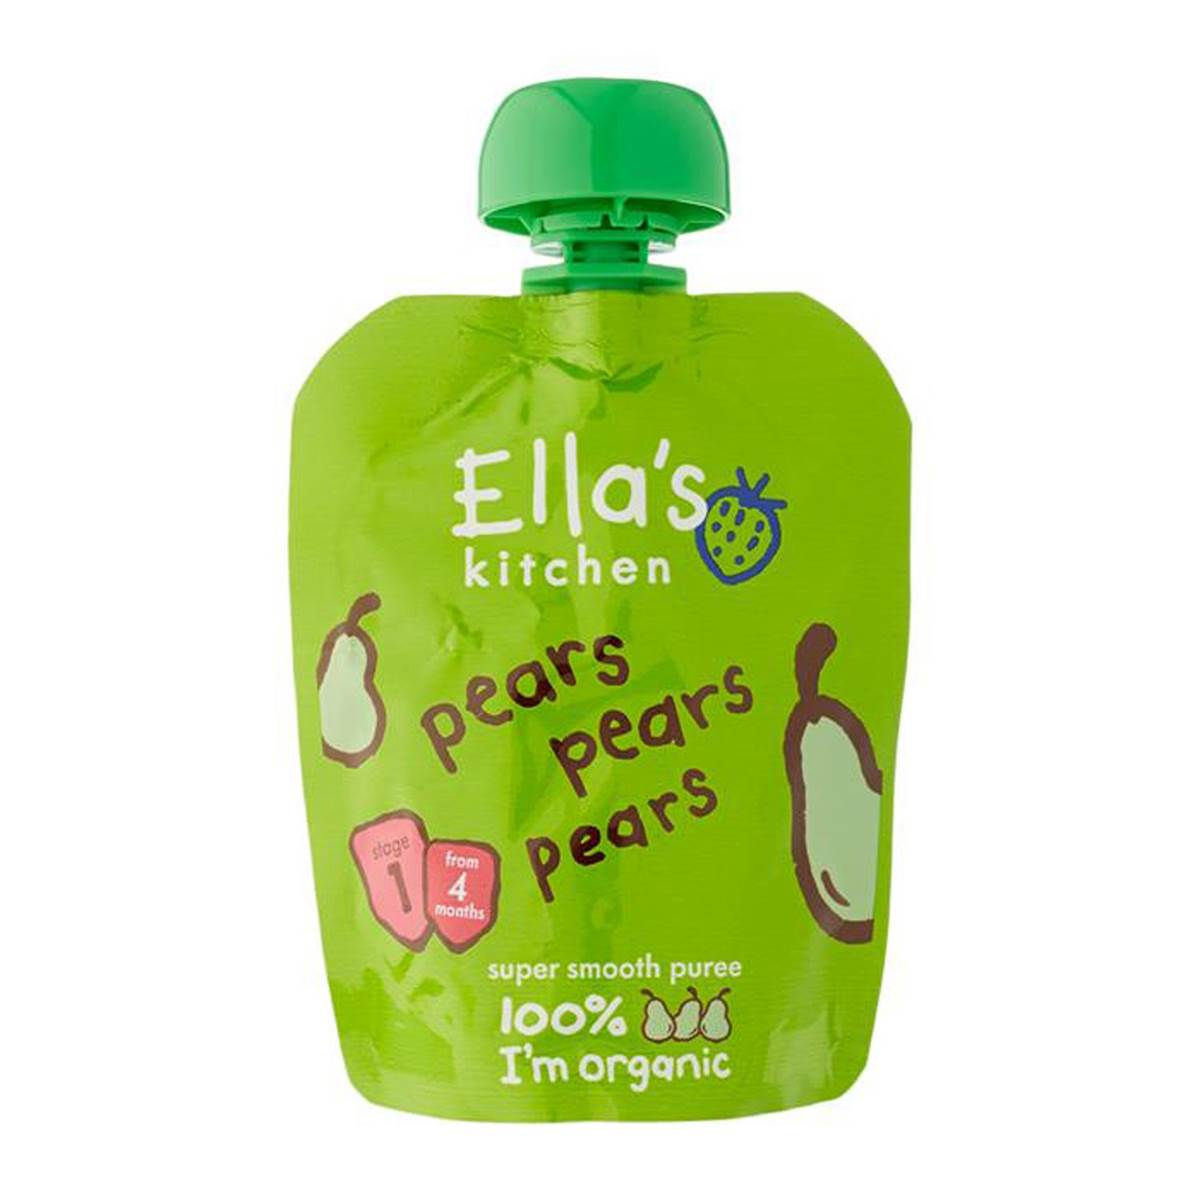 Ella's Kitchen Pears Pears Pears - 70g